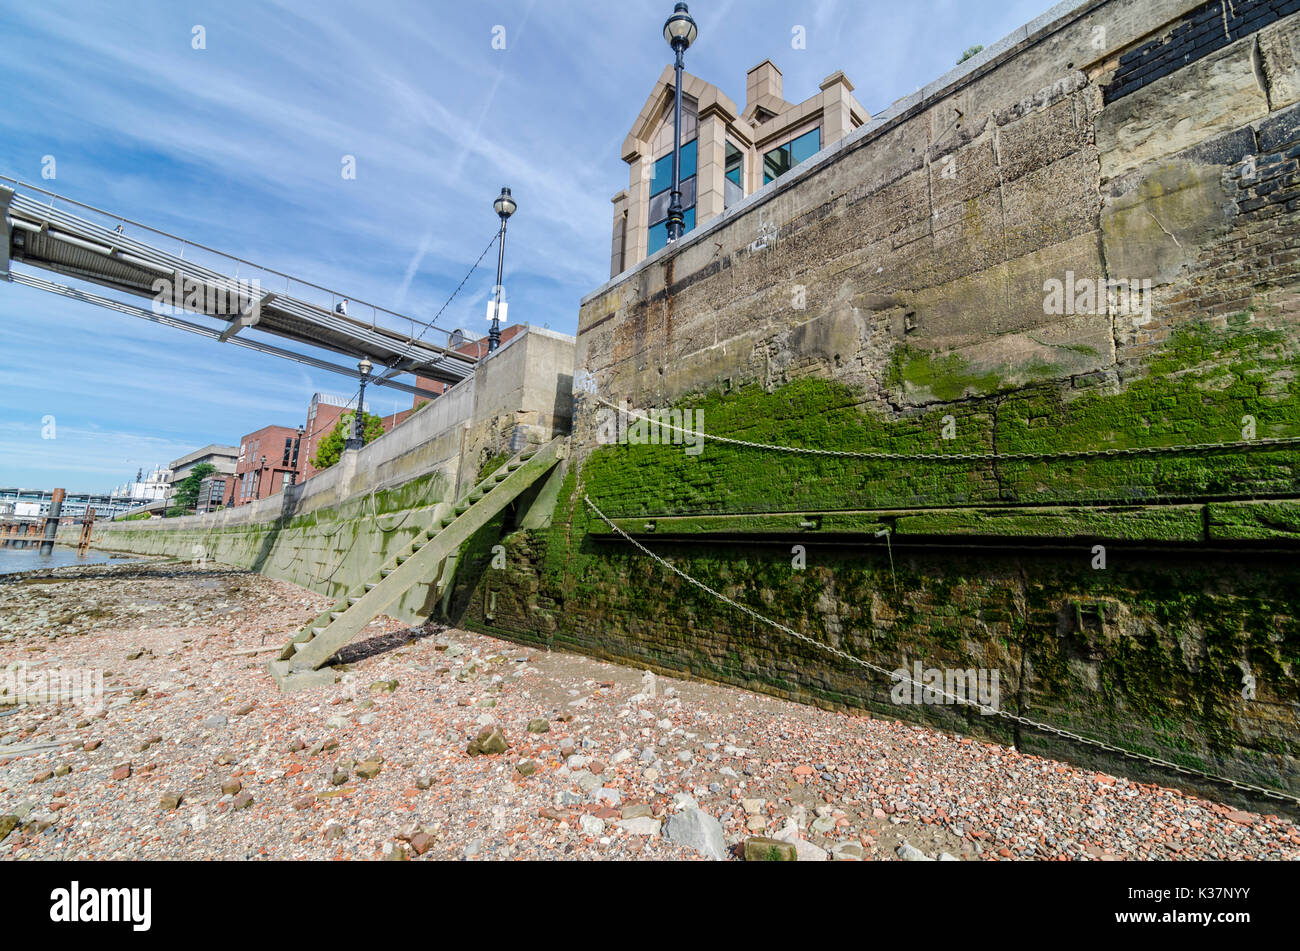 Steps into the exposed river bed of the Thames at low tide. London, UK Stock Photo